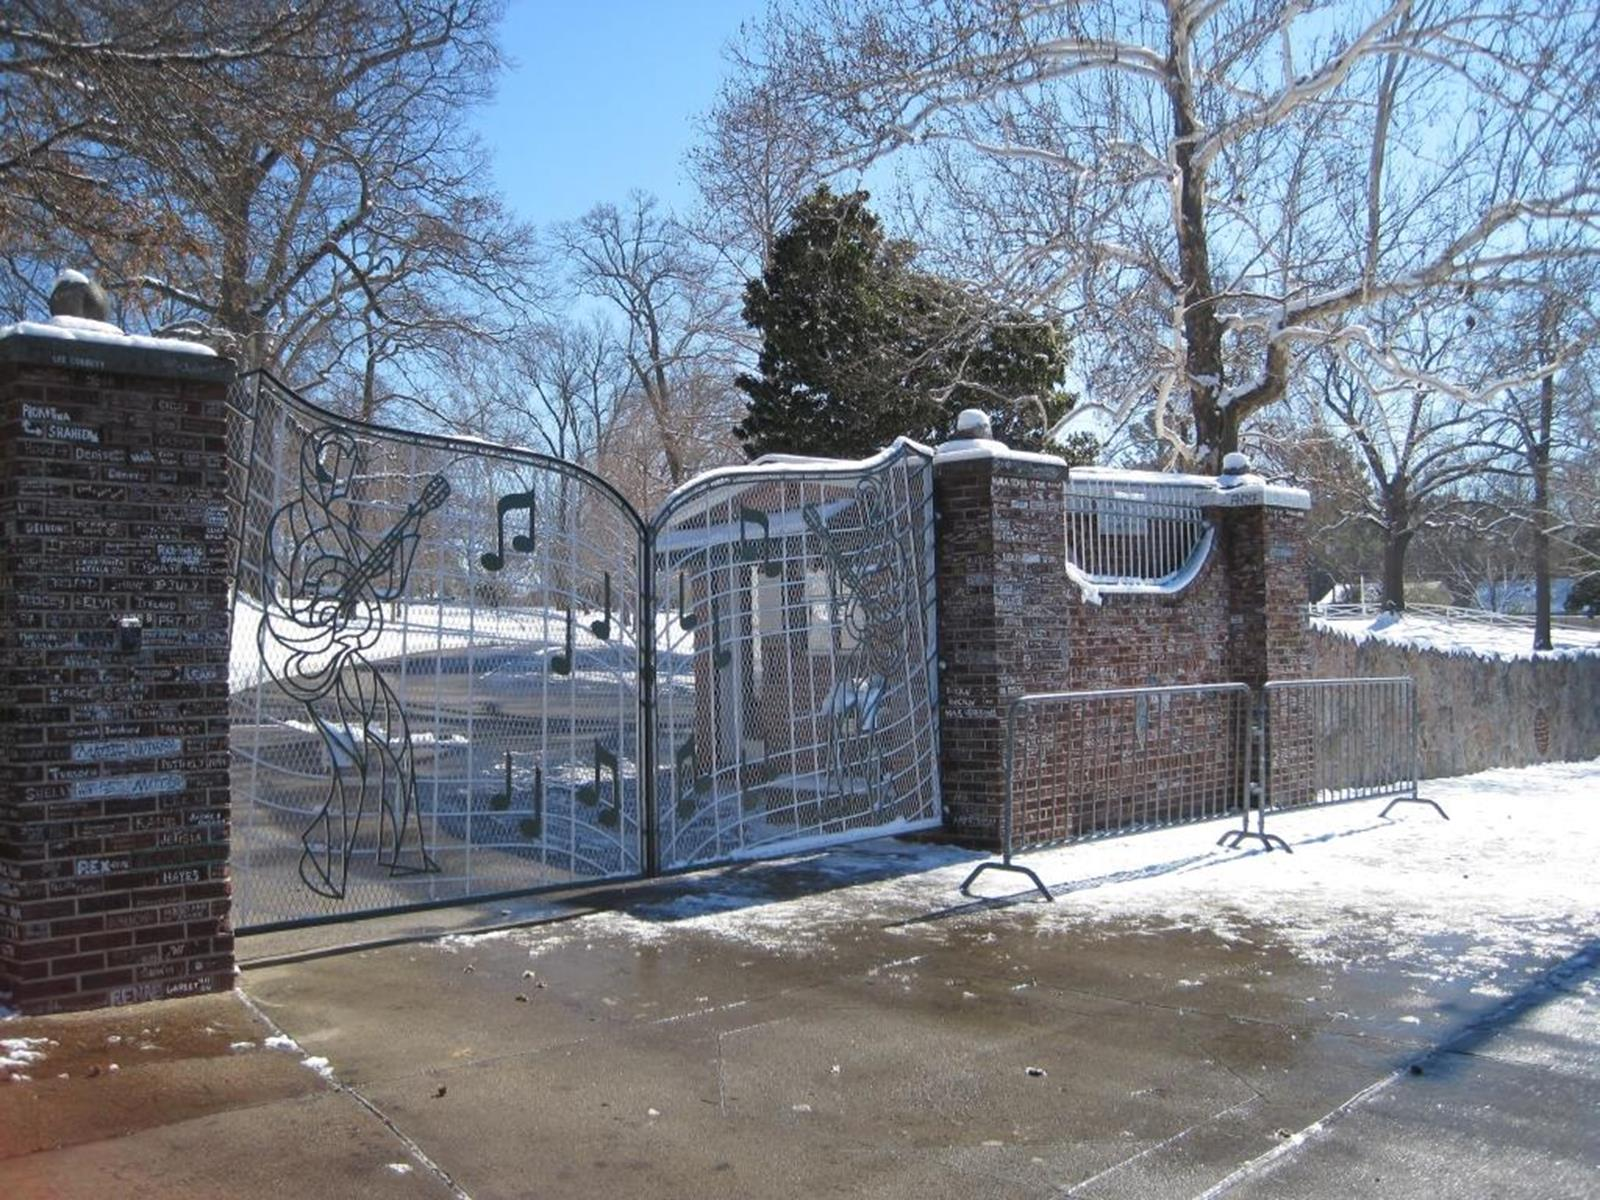 The unique gates of Graceland. Credit: Thomas R Machnitzki at en.wikipedia